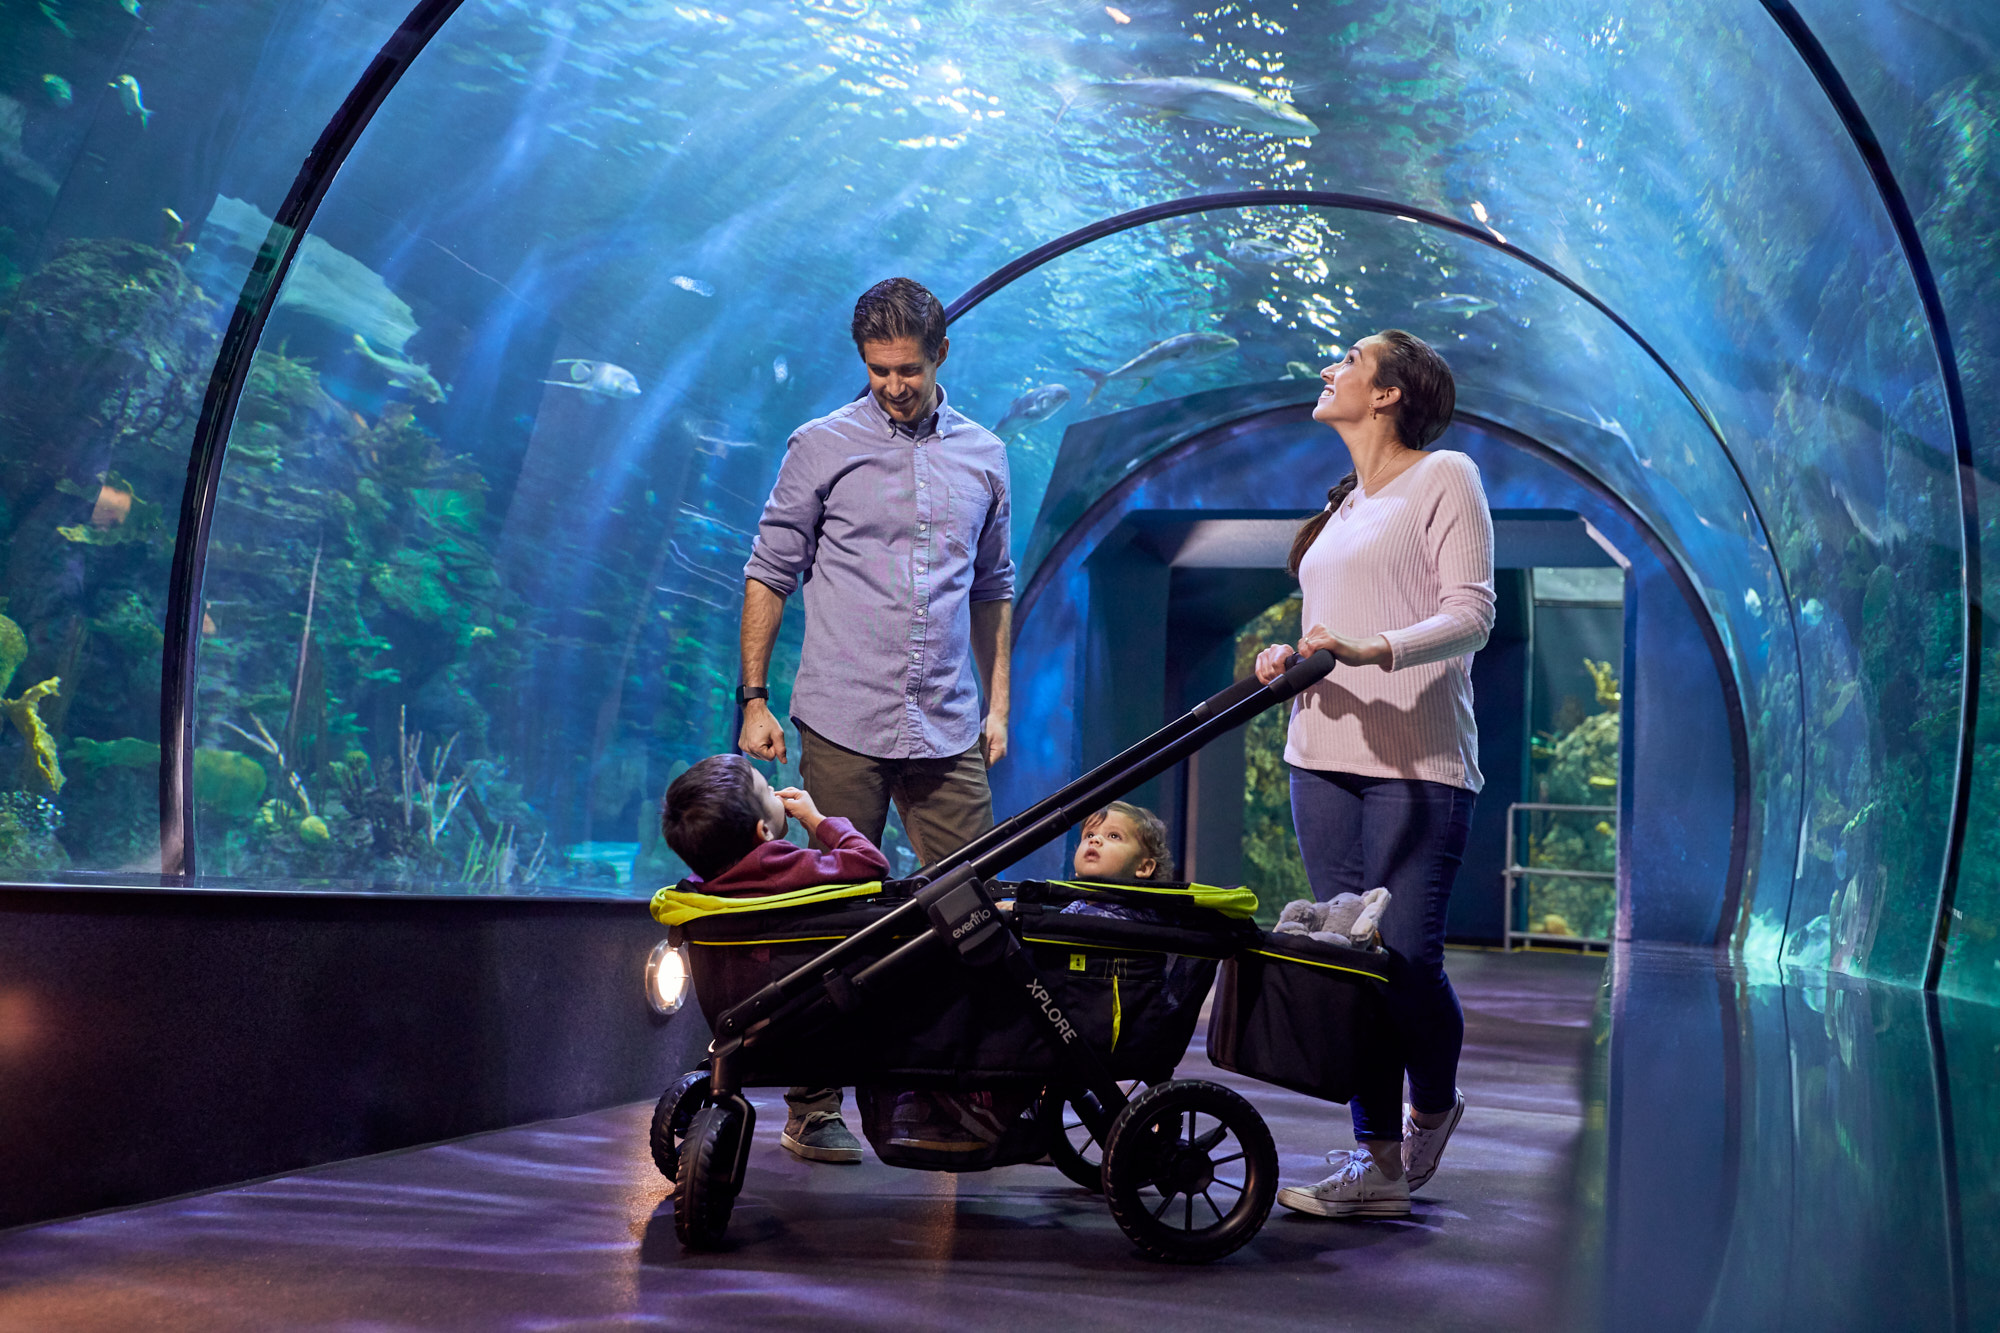 Family Enjoying Aquarium | Brand Lifestyle Photography